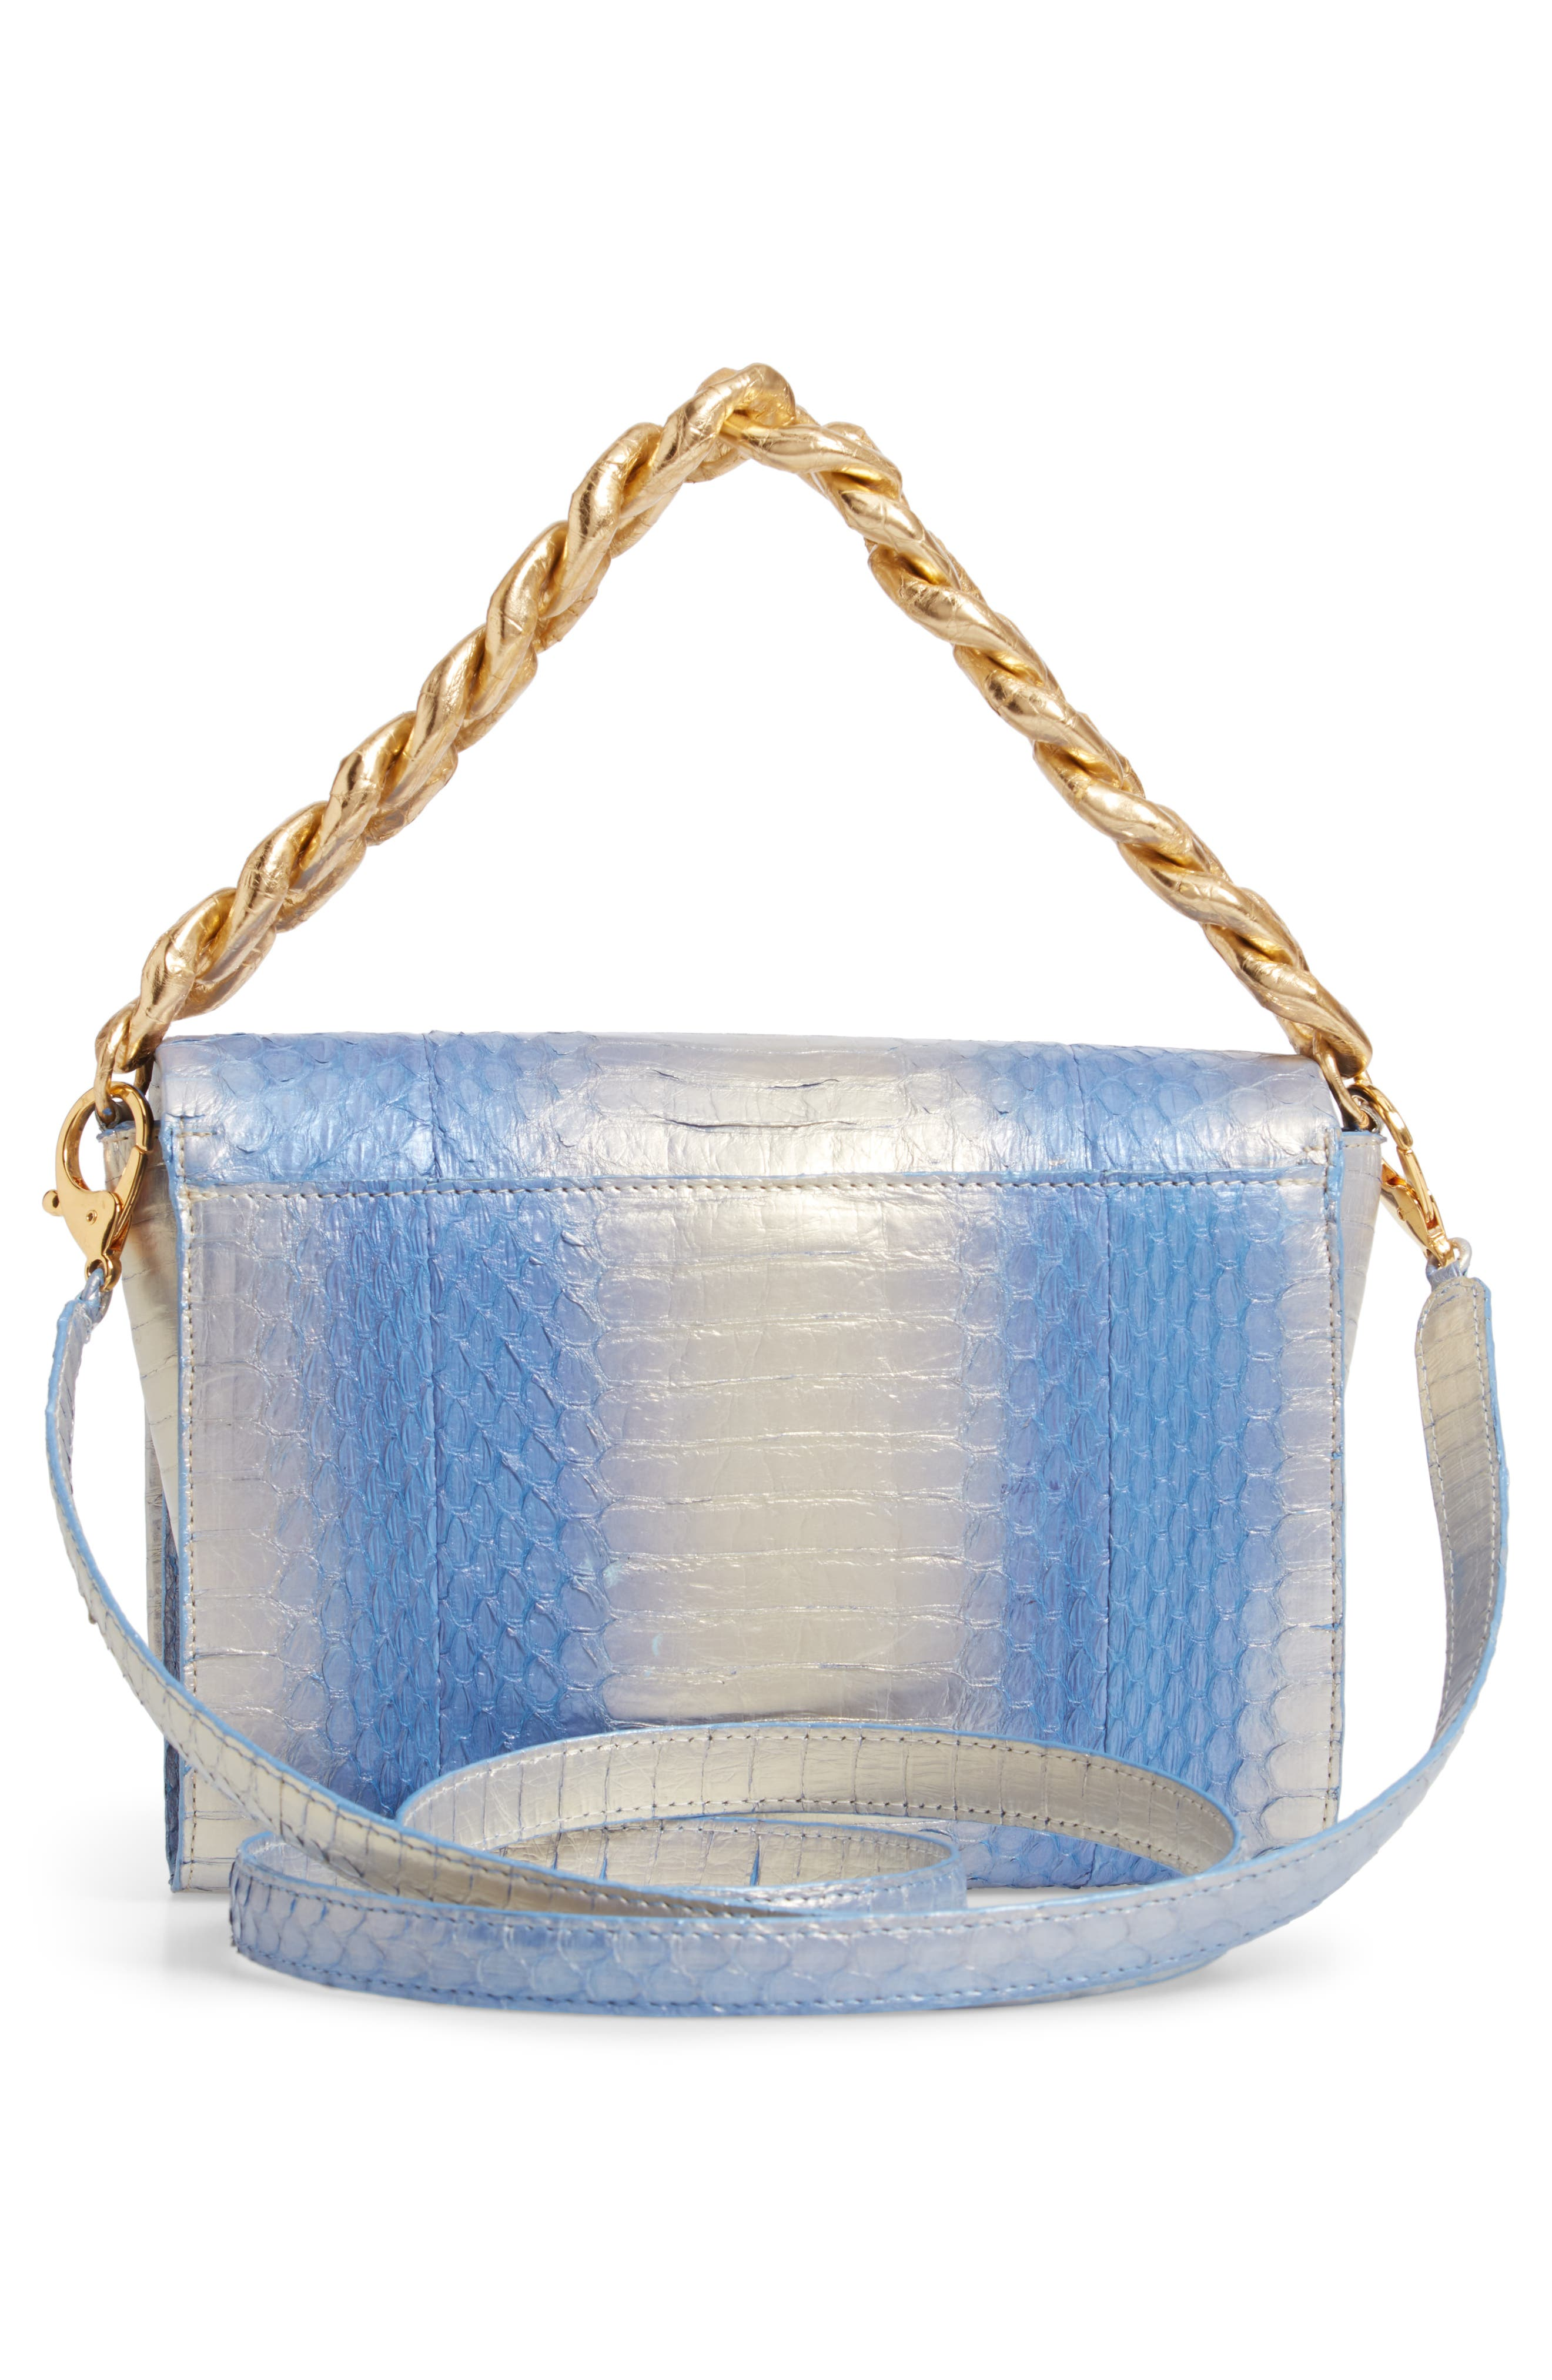 NANCY GONZALEZ, Small Carrie Genuine Crocodile Clutch, Alternate thumbnail 4, color, SILVER/ BLUE DEGRADE/ GOLD